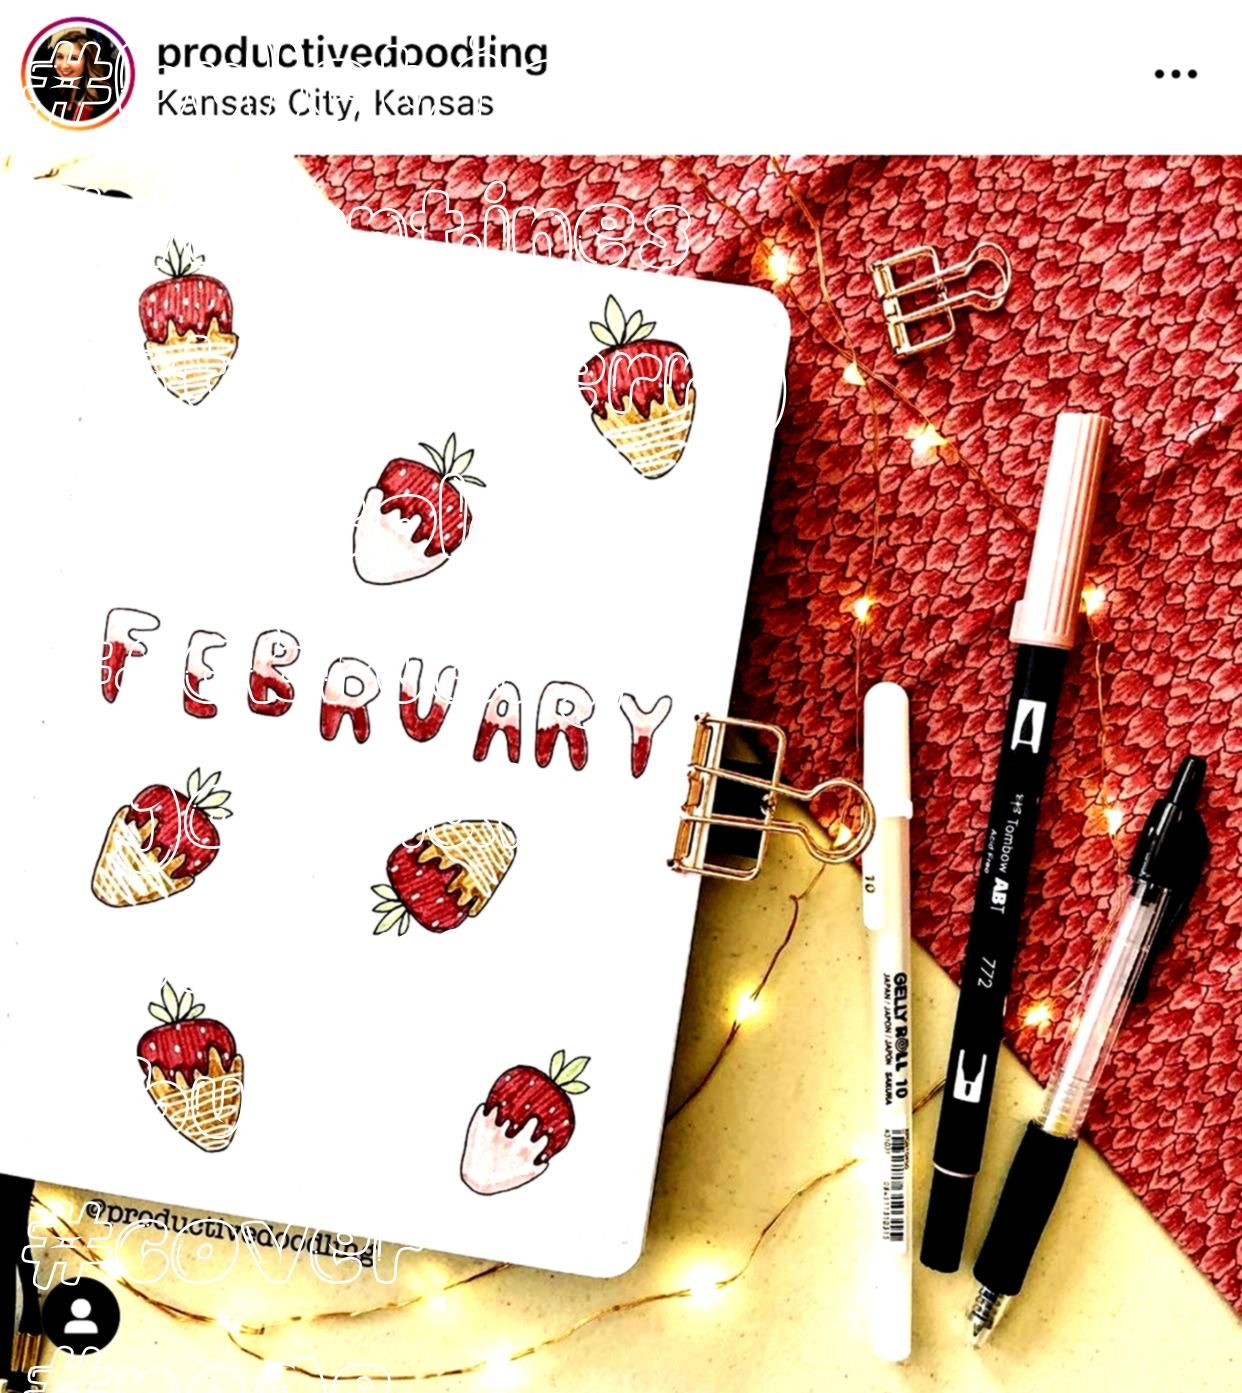 Bullet Journal Cover Page Valentines Day Bullet Journal Chocolate covered strawberry bullet journal cover pageValentines Day Bullet Journal Chocolate covered strawberry b...